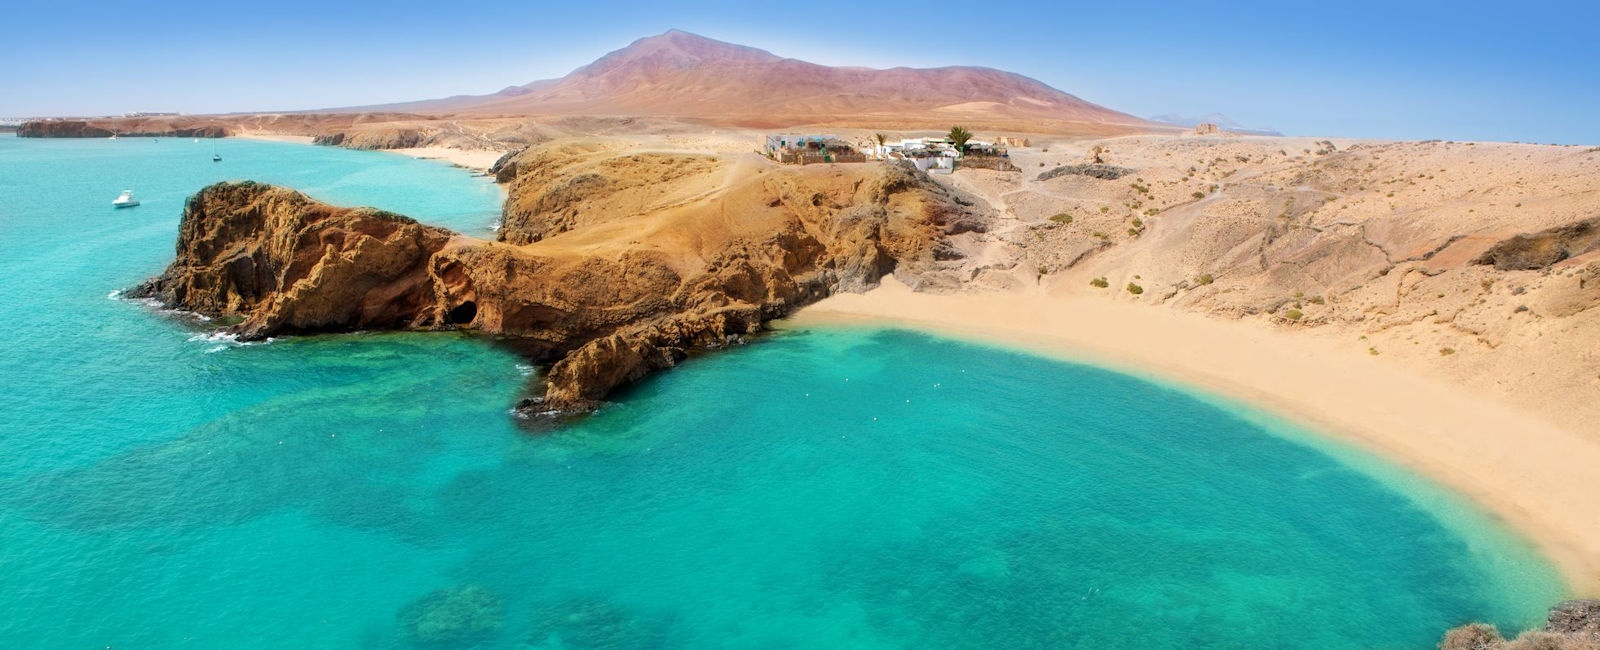 Luxury Lanzarote Holidays